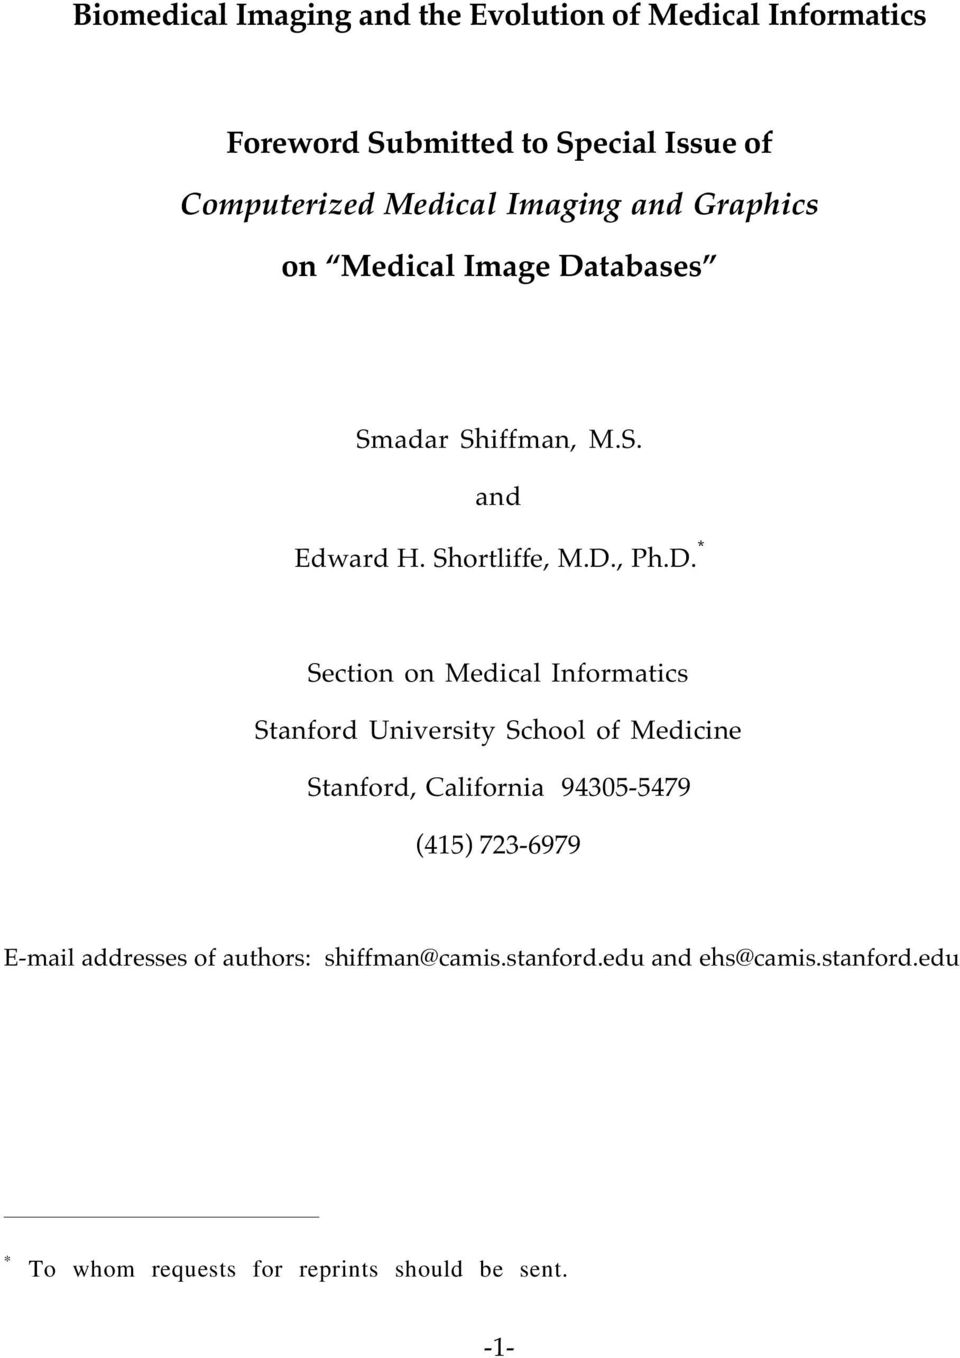 tabases Smadar Shiffman, M.S. and Edward H. Shortliffe, M.D.